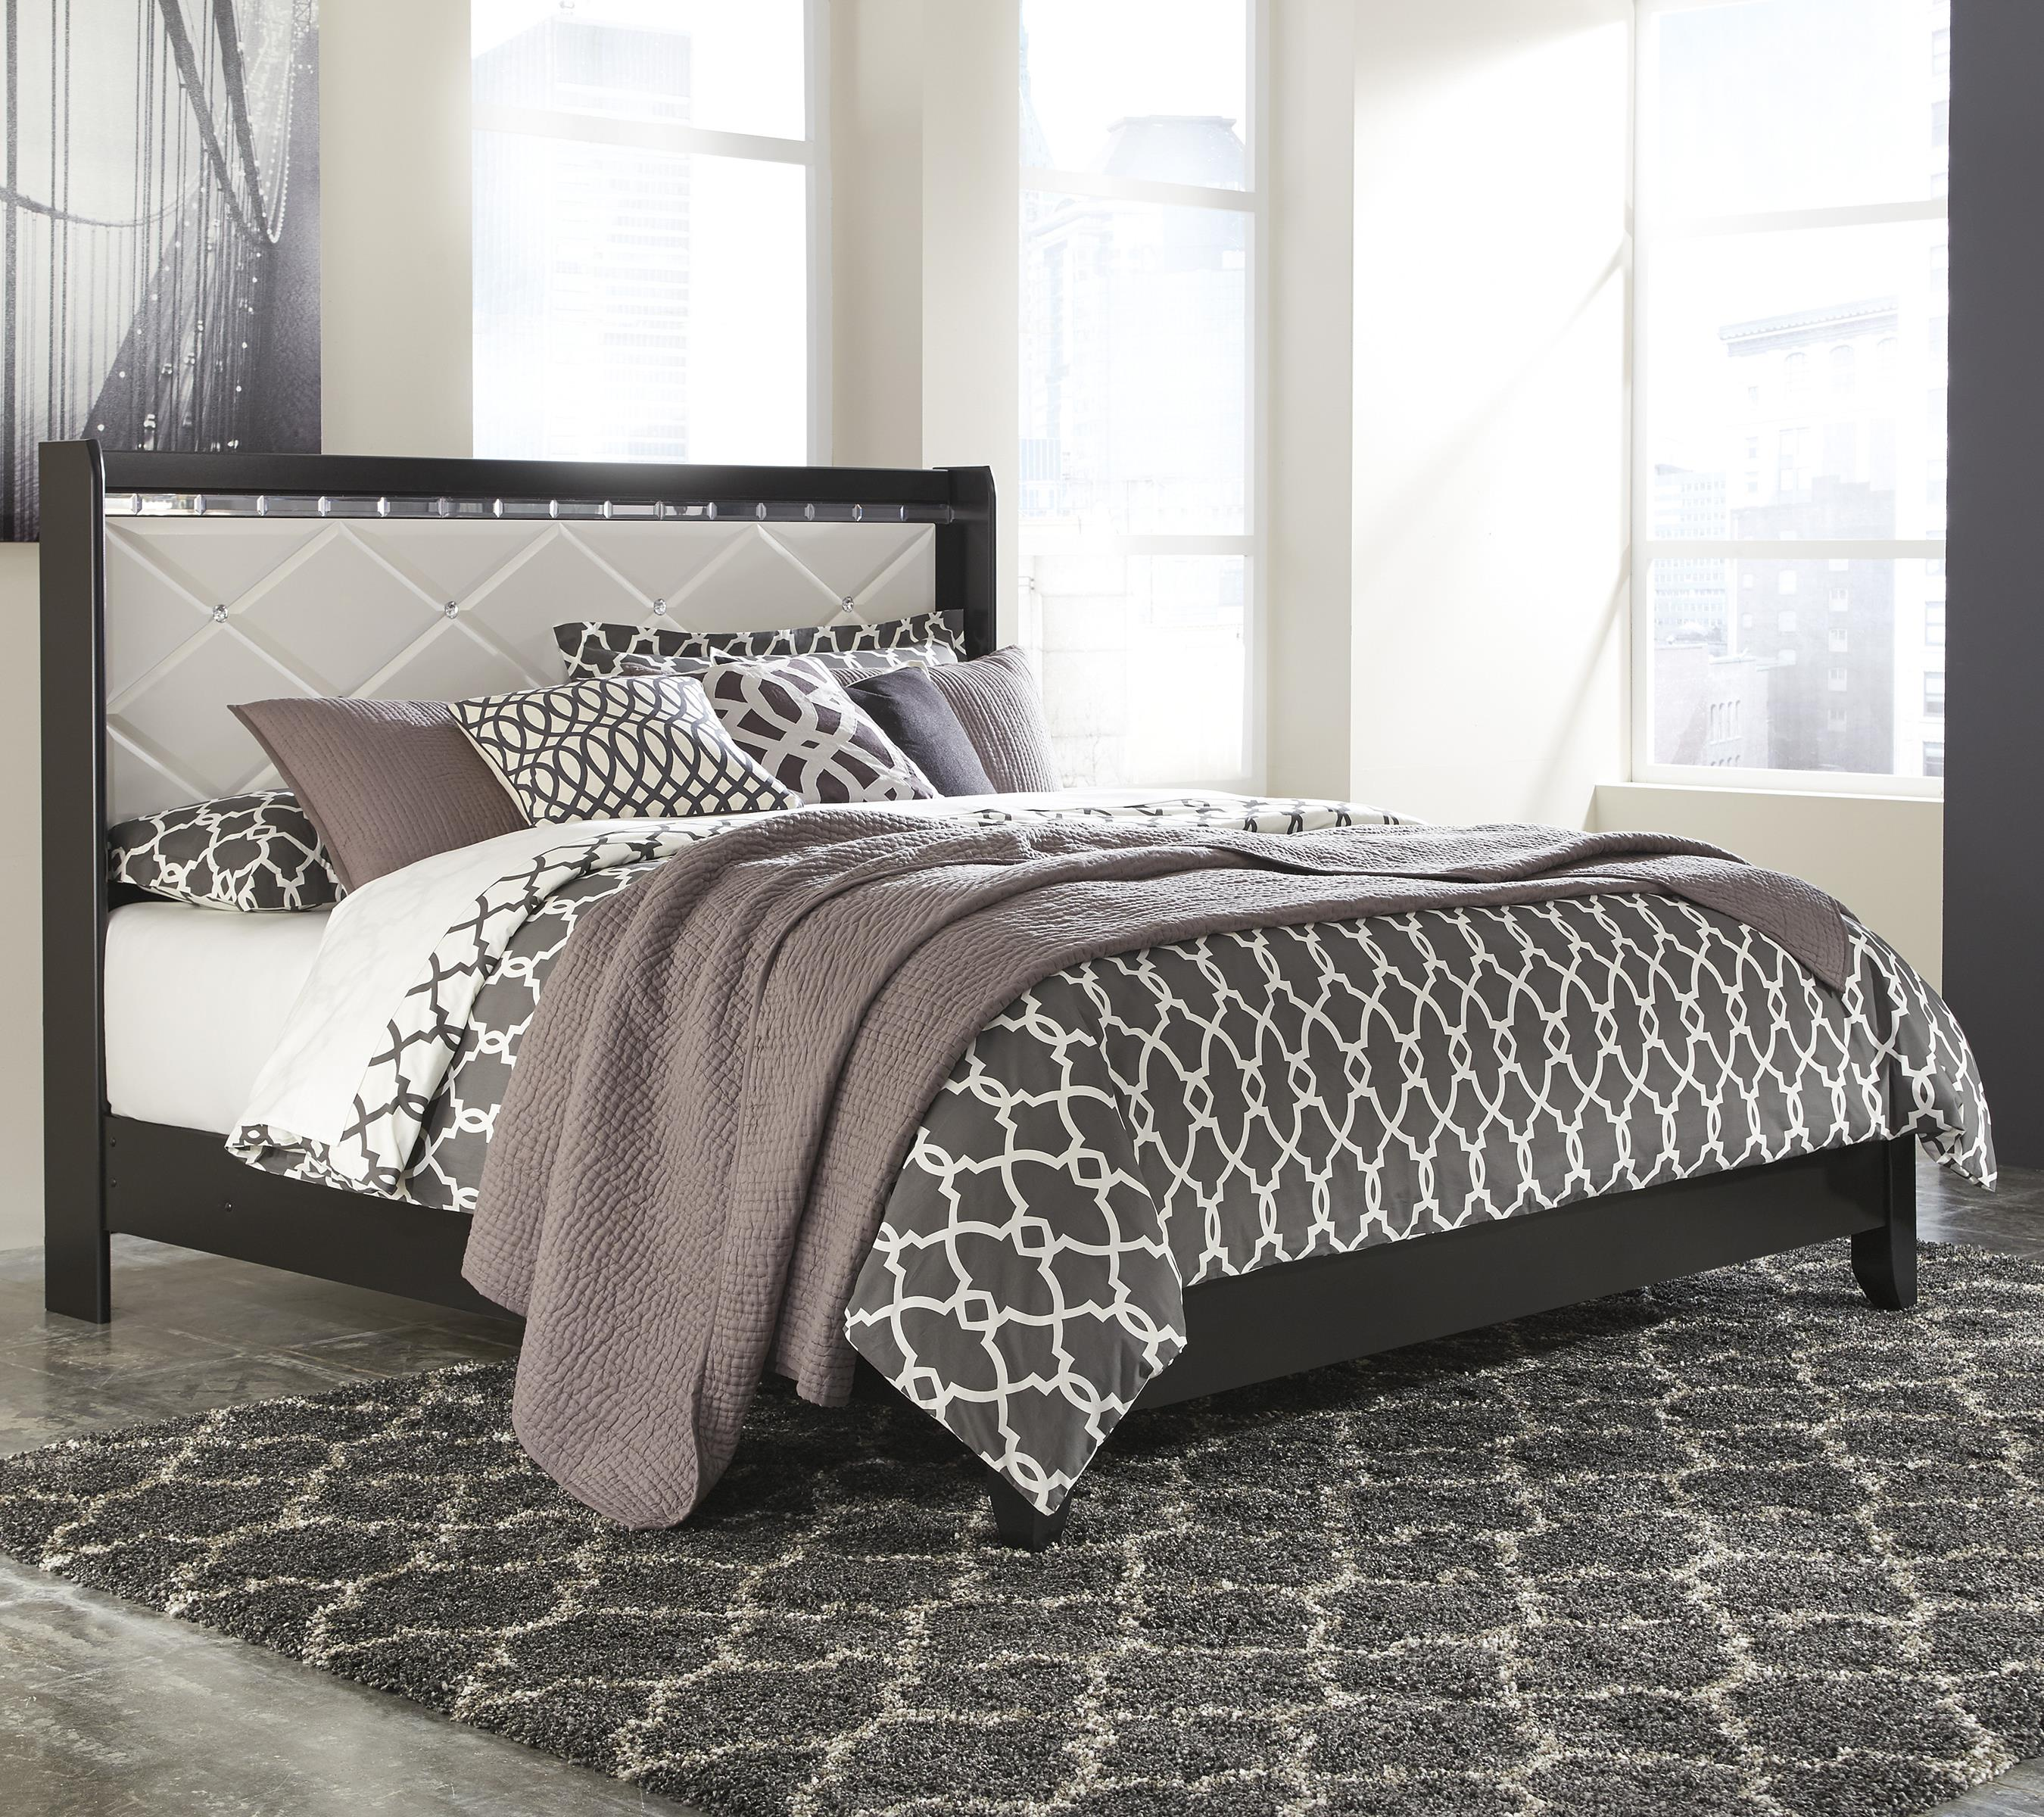 Signature Design by Ashley Fancee King Panel Bed - Item Number: B348-58+56